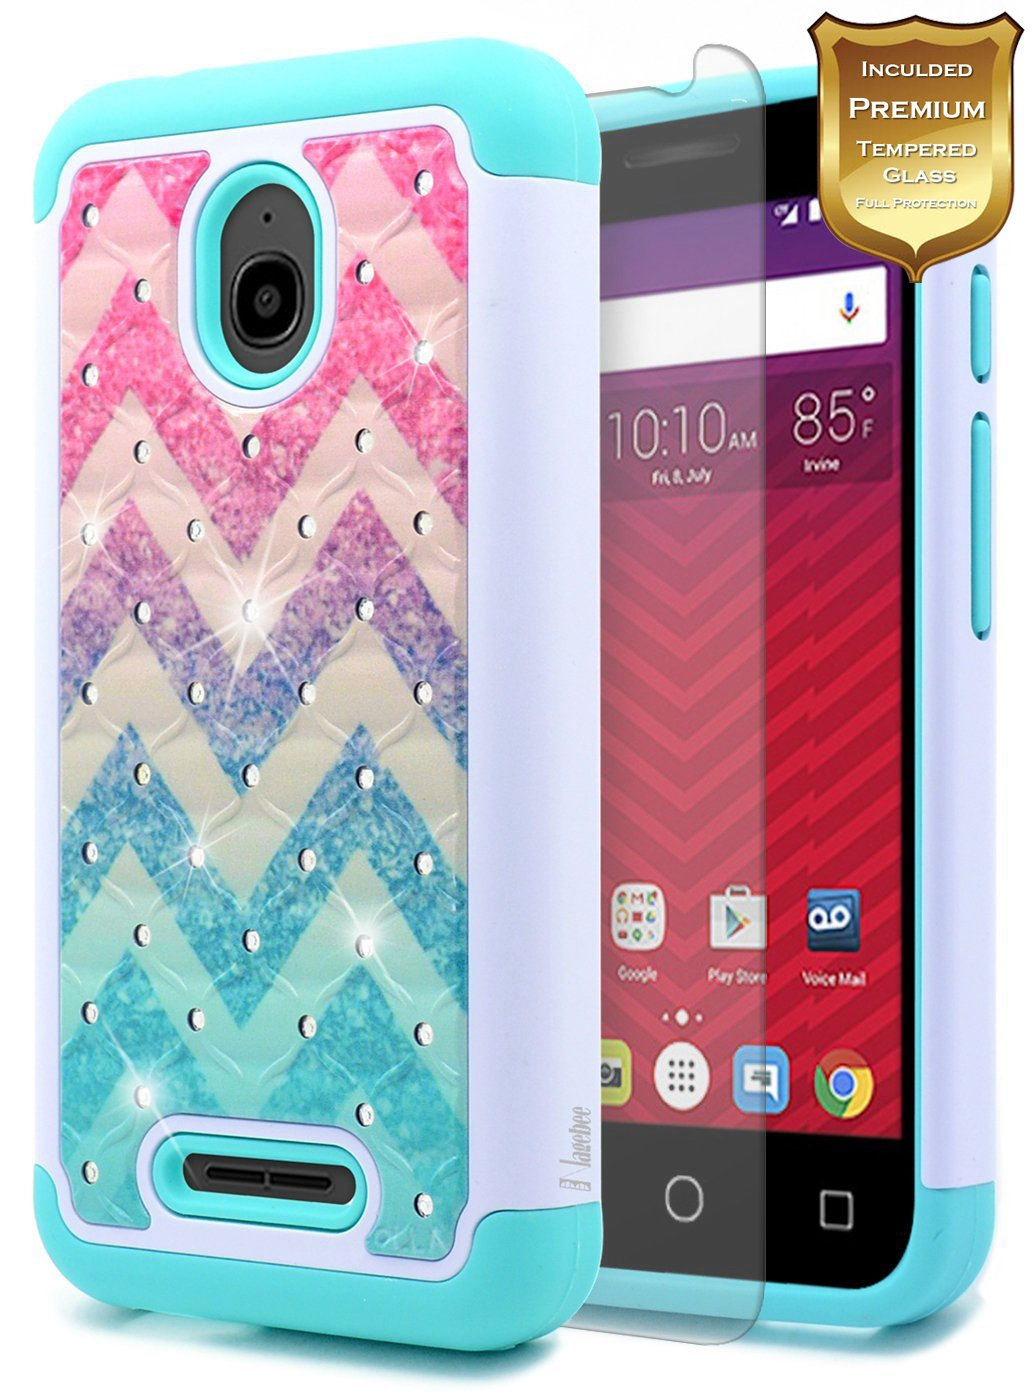 Details about For Alcatel Ideal/Dawn/Streak/Acquire Case | Hybrid Bling  Rubber Phone Cover